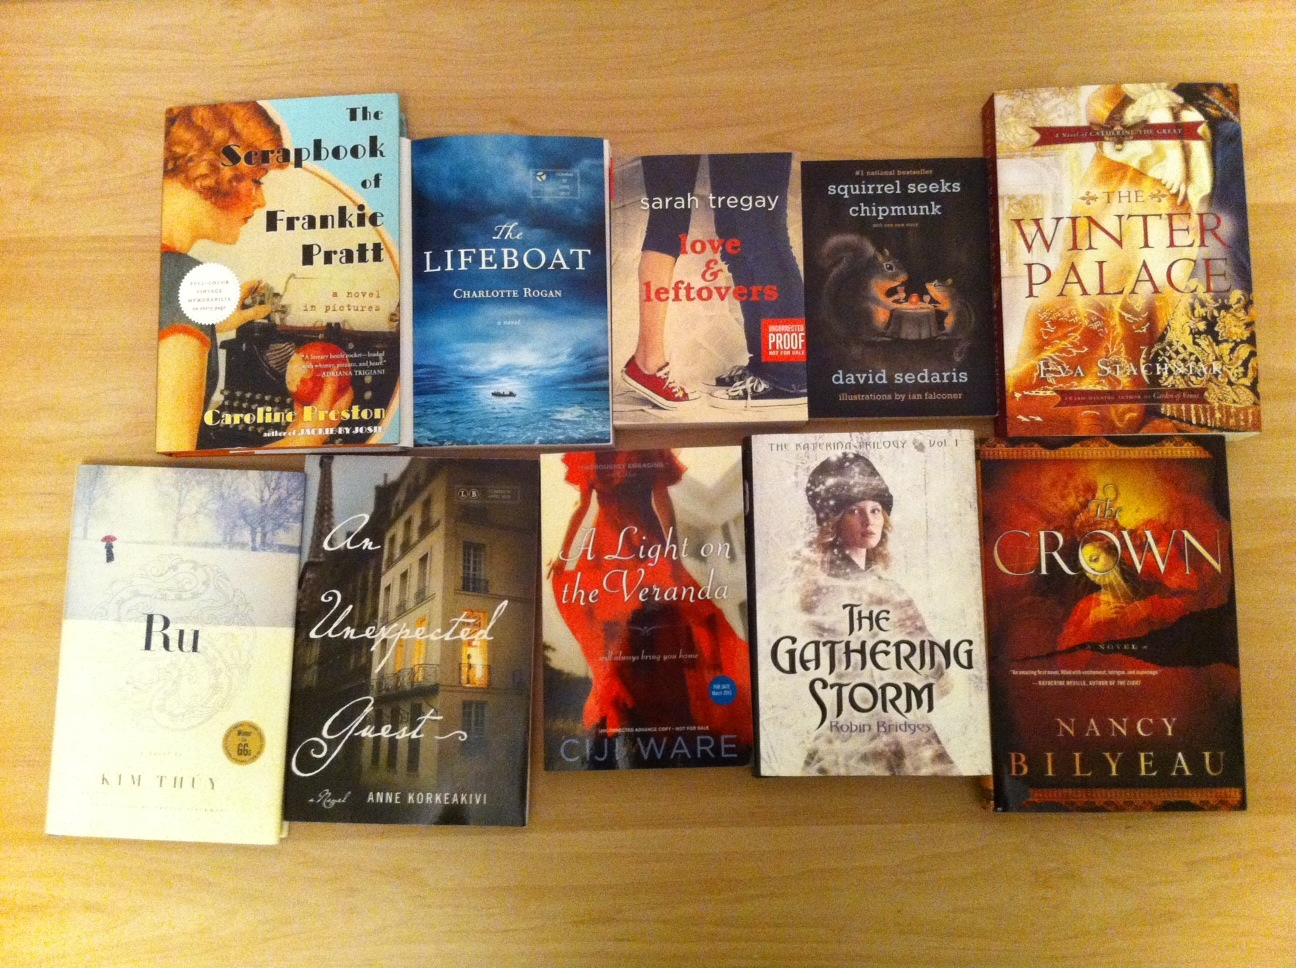 In My Mailbox (books, Books And A Kobo Vox!)